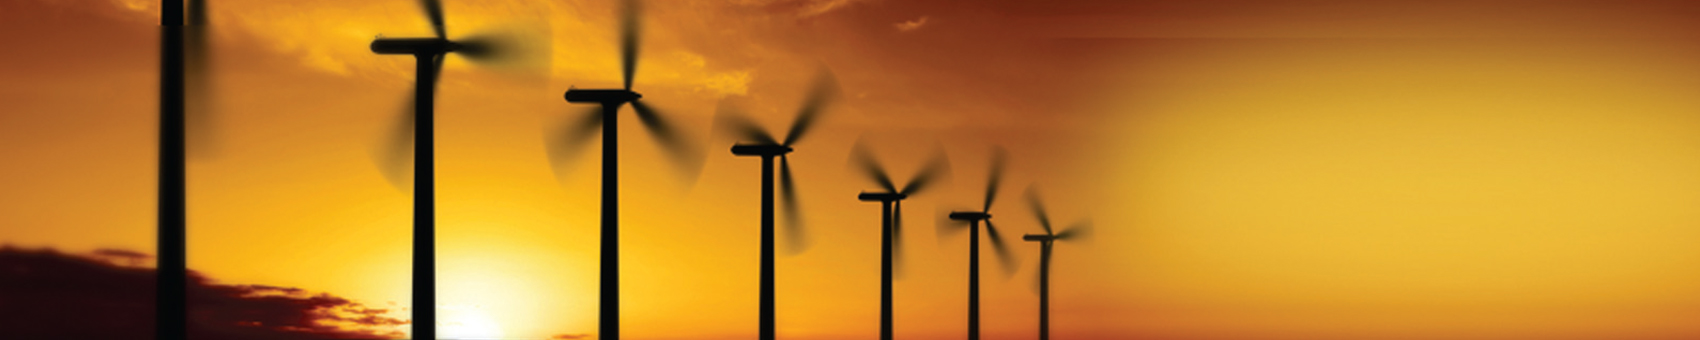 Renewable energy & power systems